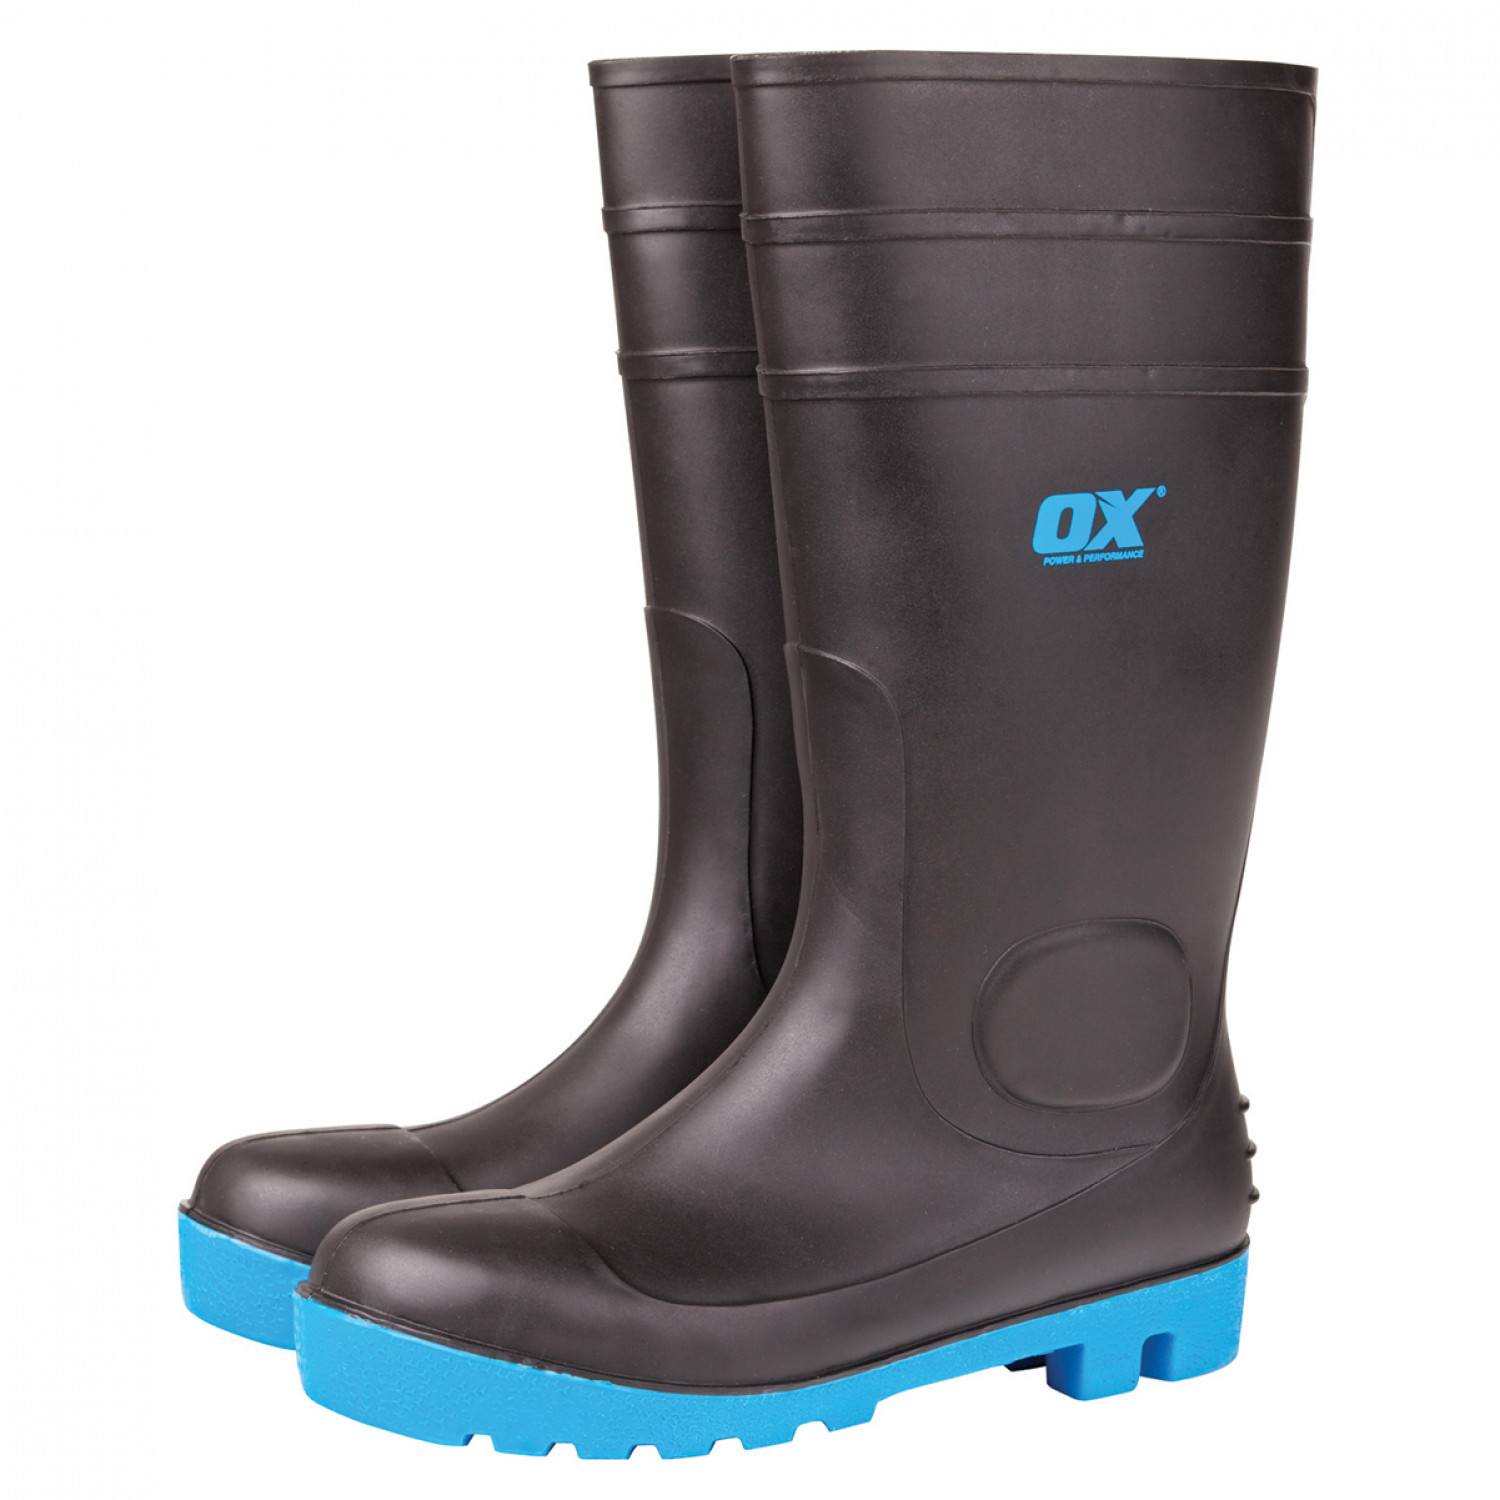 45ac85570a3cb1 OX Safety Wellington Boot – Size 8 – Phoenix Hire and Sales Ltd